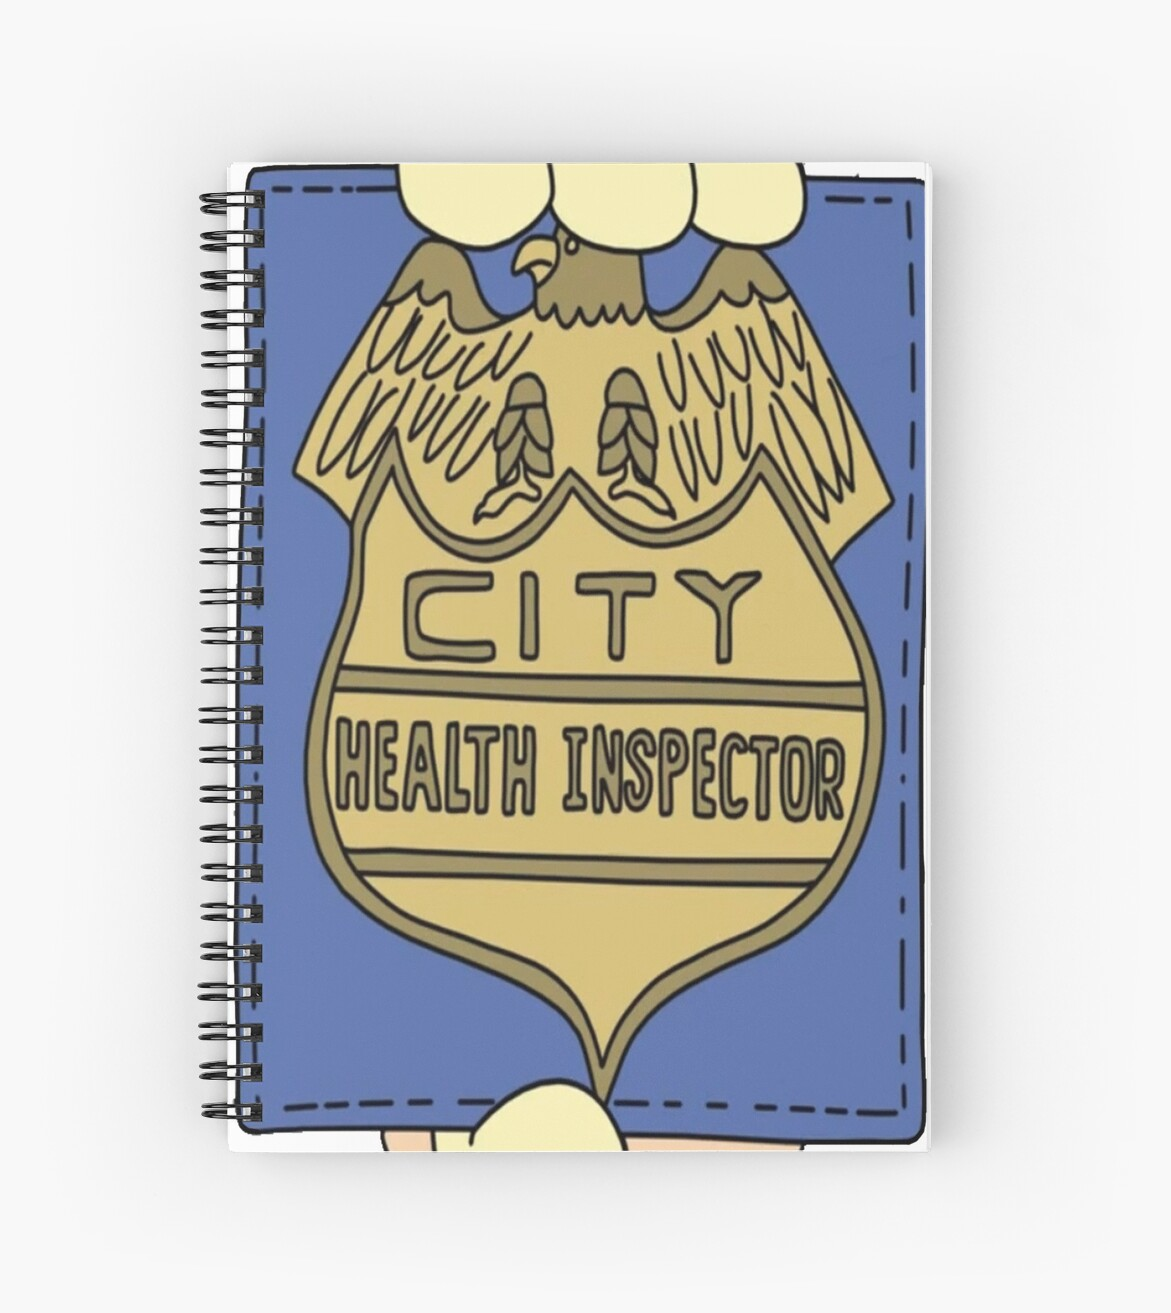 City Health Inspector - Bobs Burgers by dragonhugs